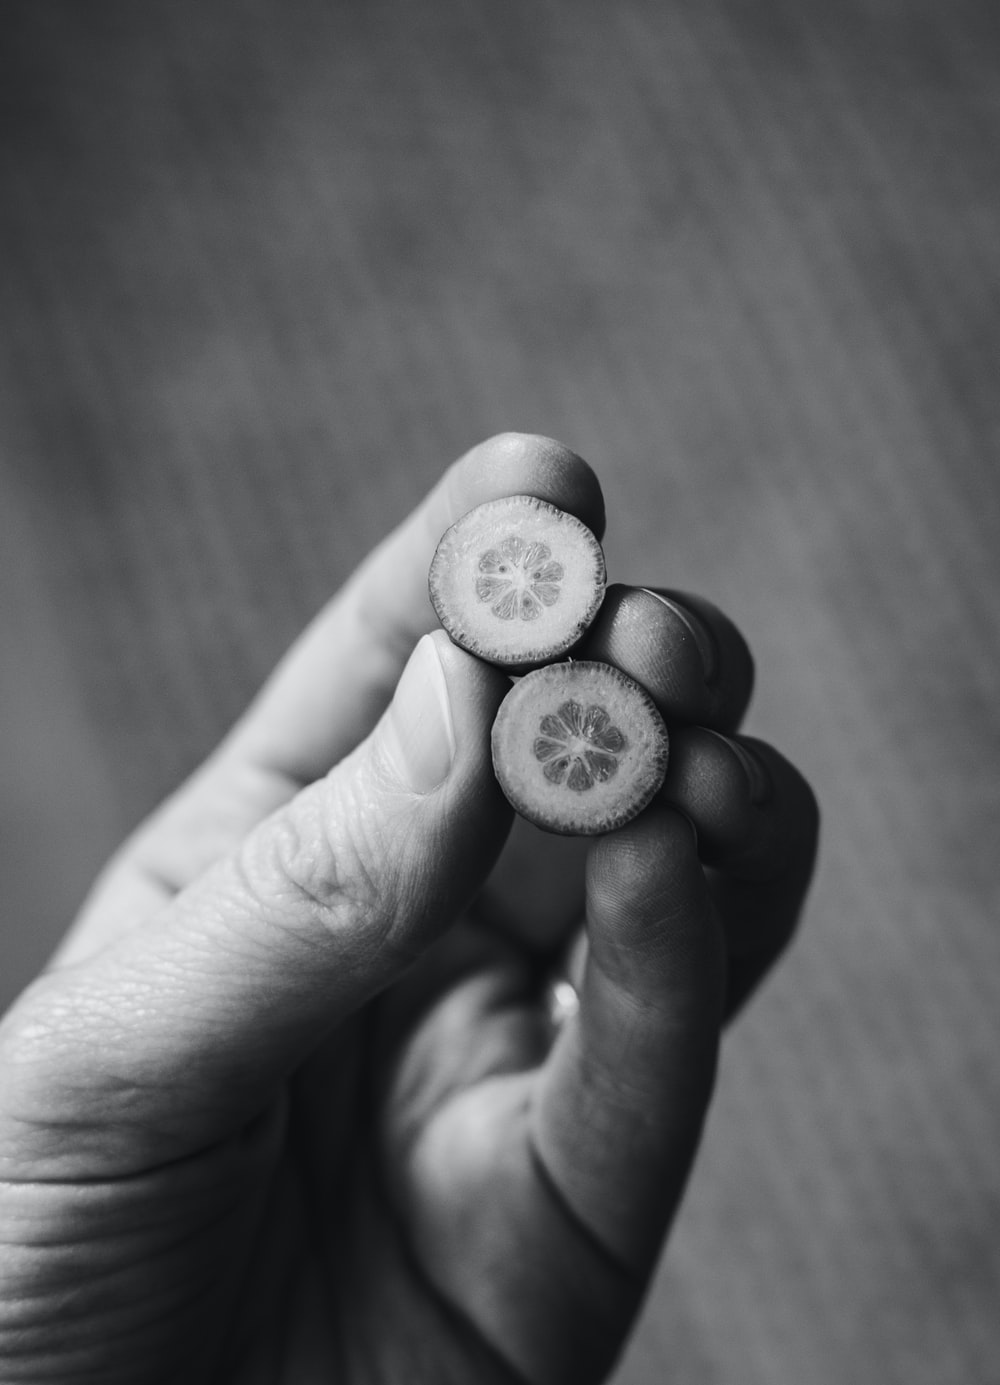 grayscale photo of person holding round coin